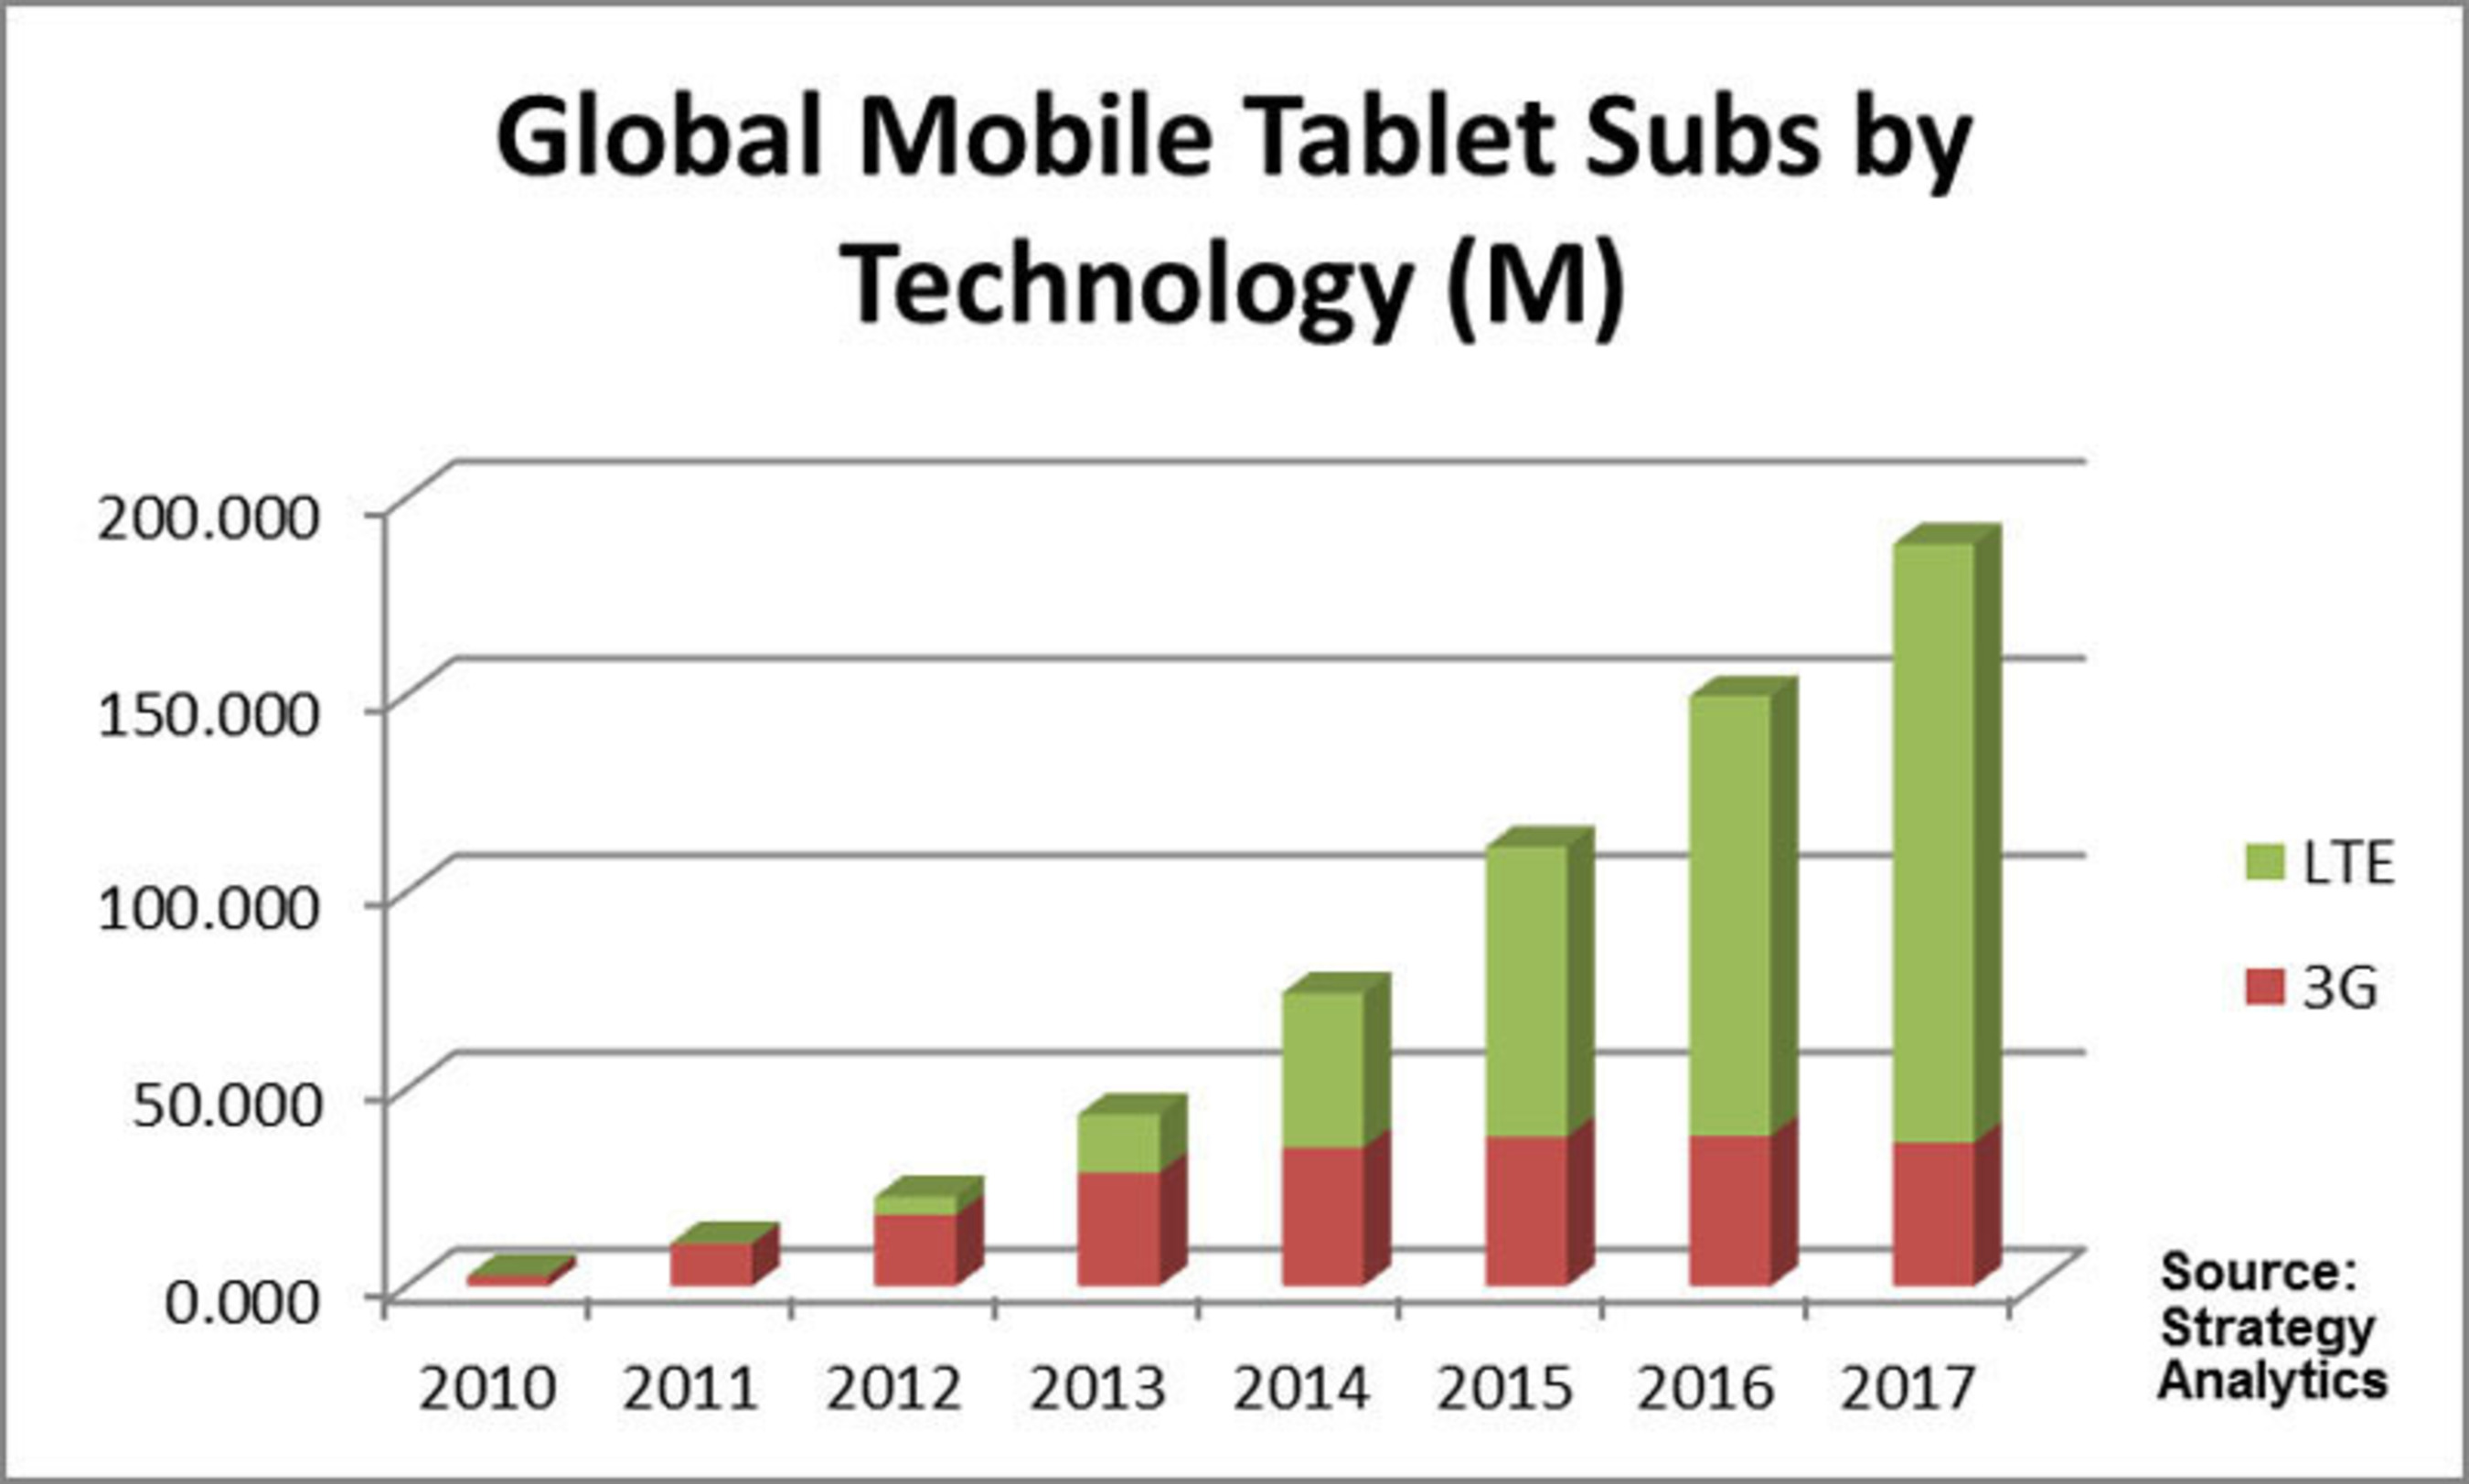 Strategy Analytics predicts that global mobile broadband subscriptions on tablet PCs will grow 8 times from 2012 to 2017 with more than 165 million new connected tablet PCs